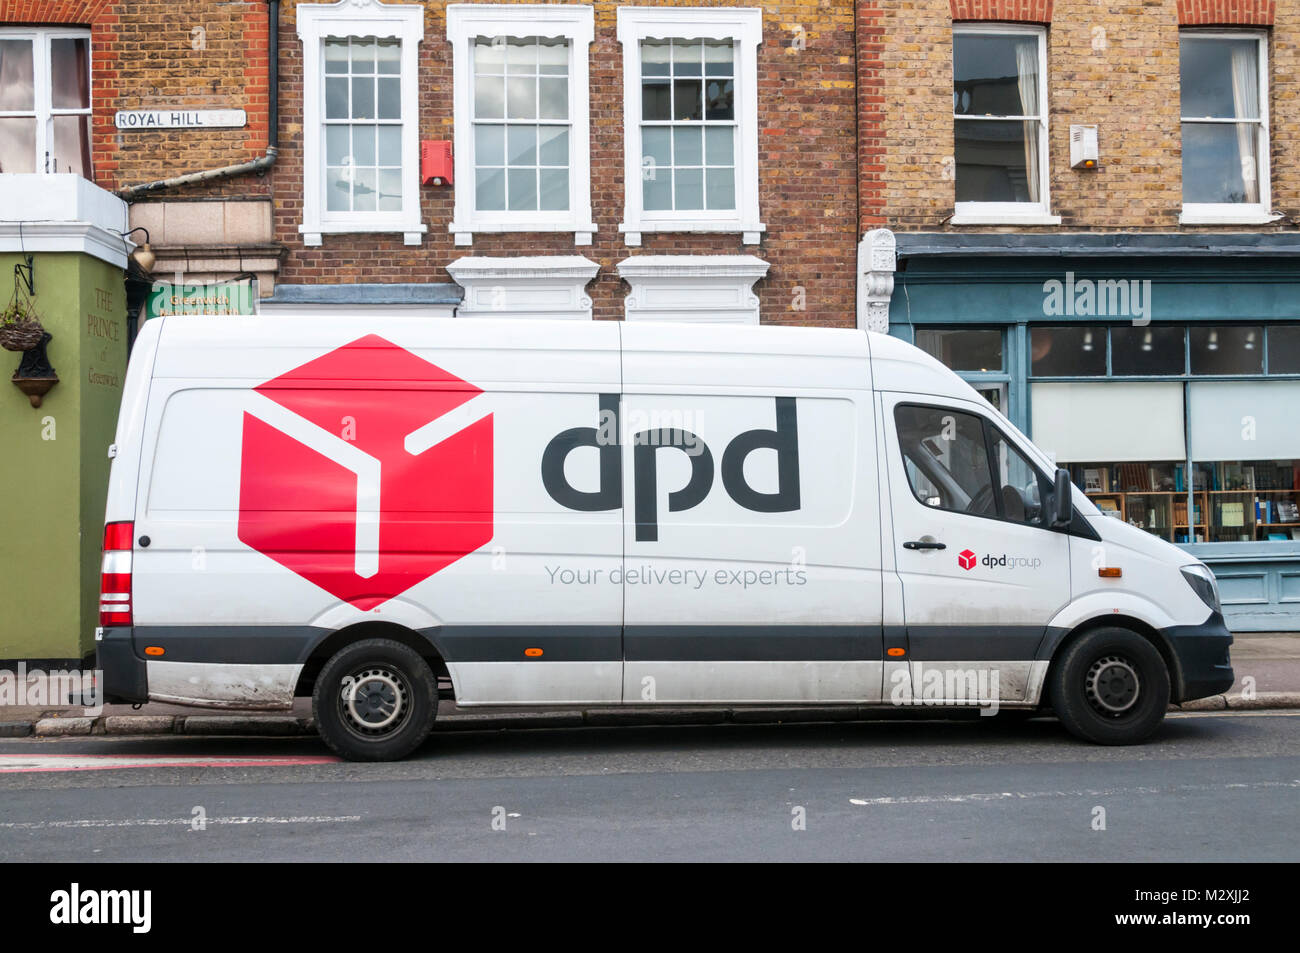 Dpd Delivery Truck Stock Photos Dpd Delivery Truck Stock – Desenhos